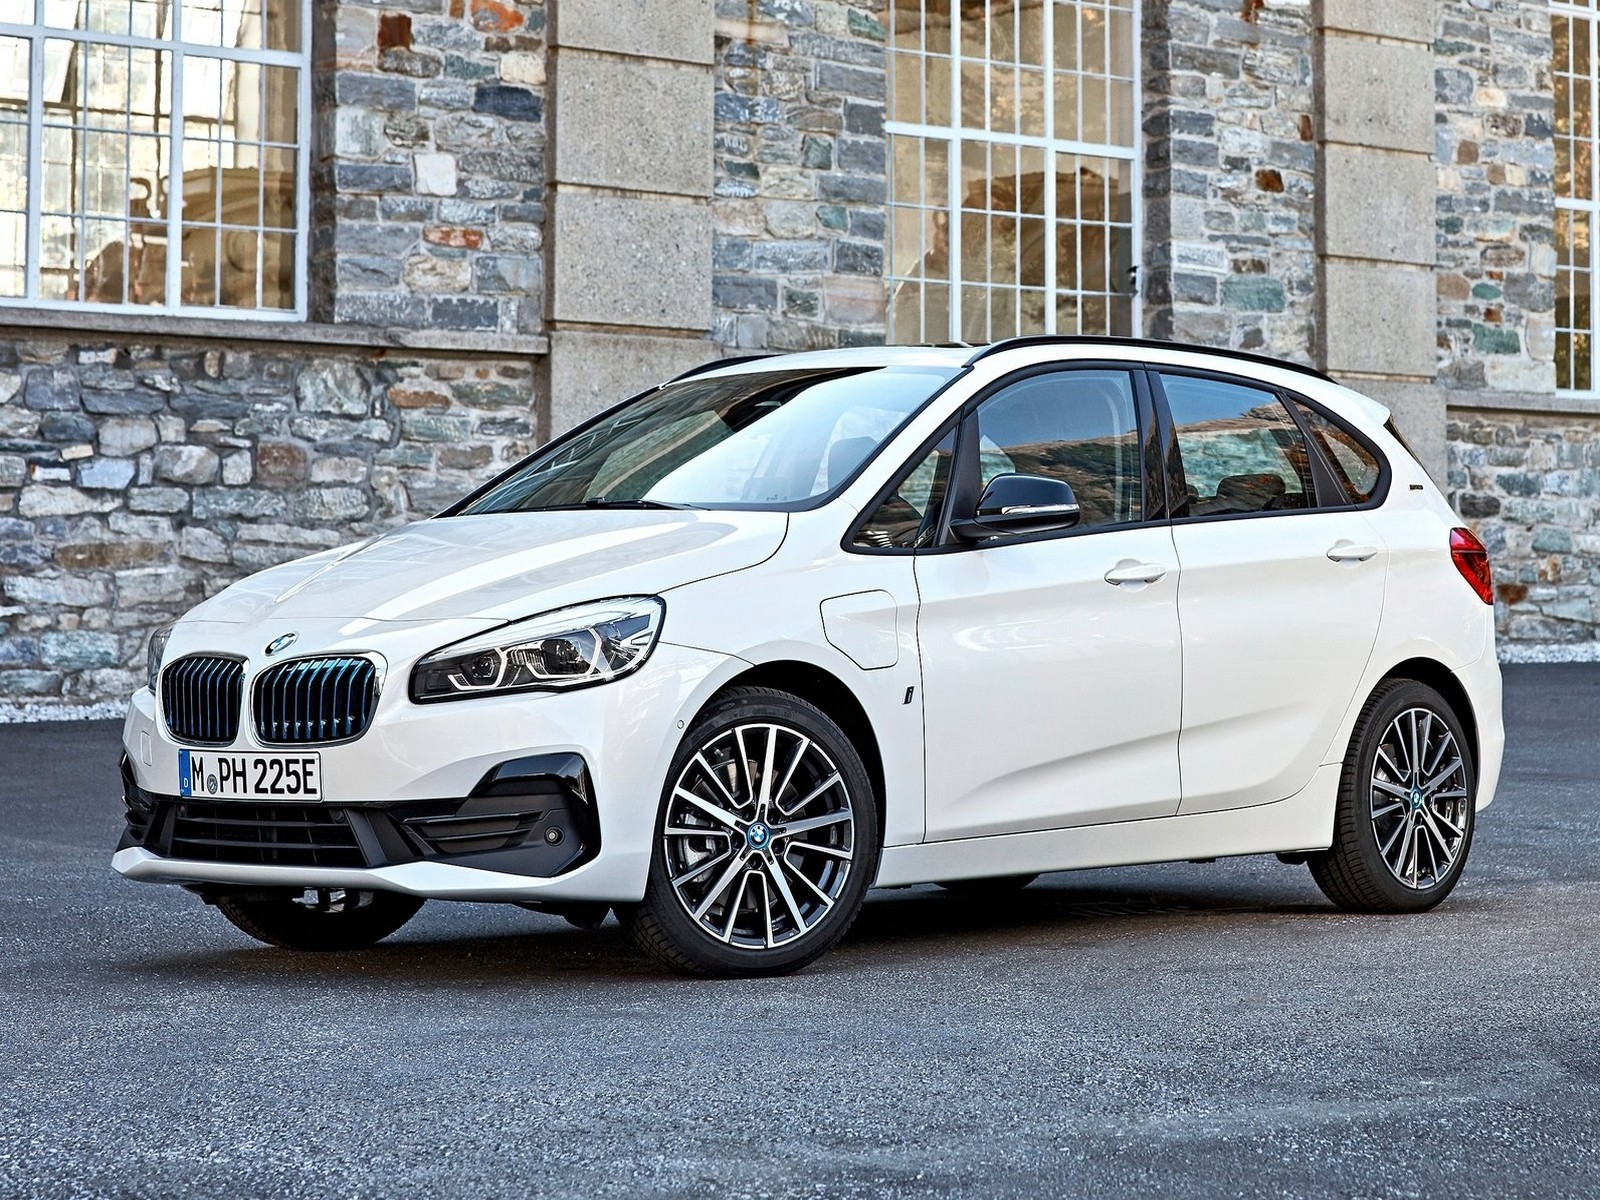 BMW 225xe iPerformance 2019: Modèle hybride rechargeable